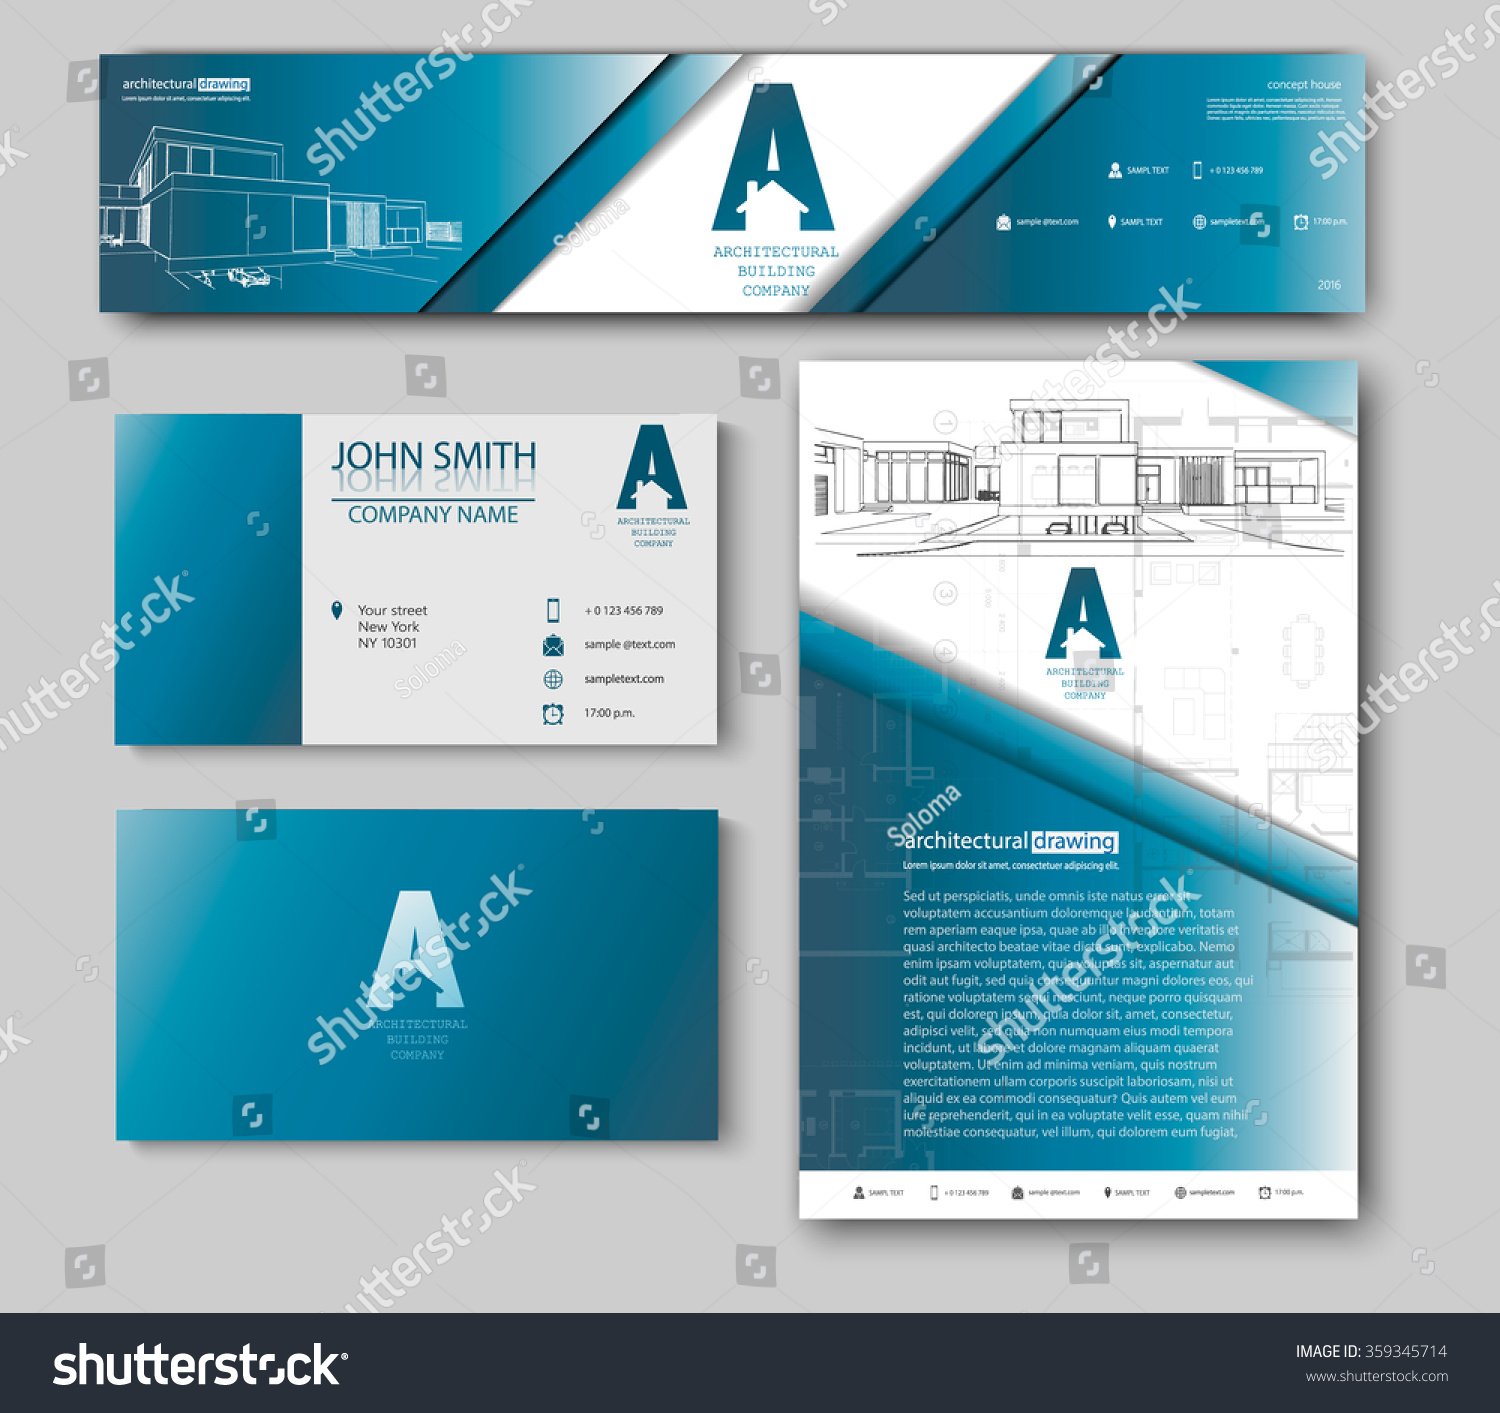 Business cards design blueprint sketch architectural vectores en business cards design with blueprint sketch for architectural company architectural background for architectural project malvernweather Gallery